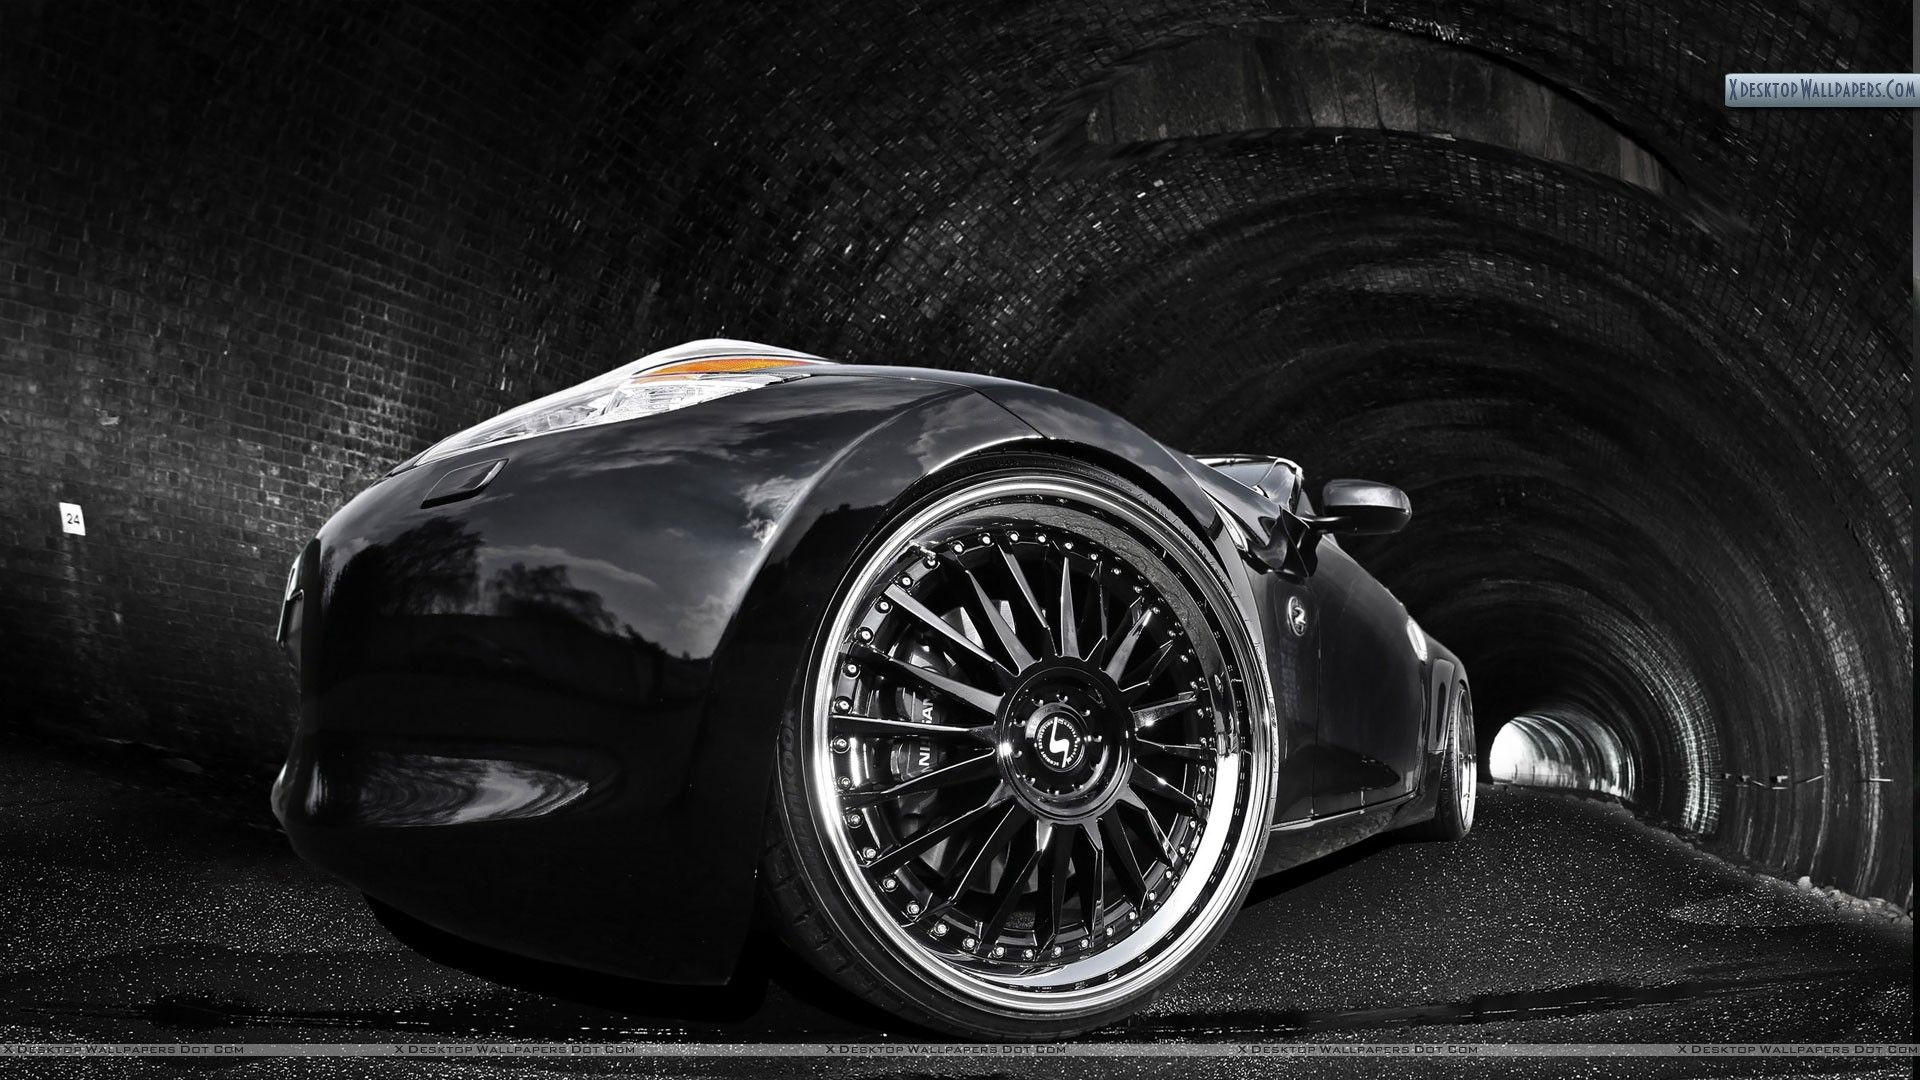 Alloy Wheels Wallpapers, Photos & Images in HD